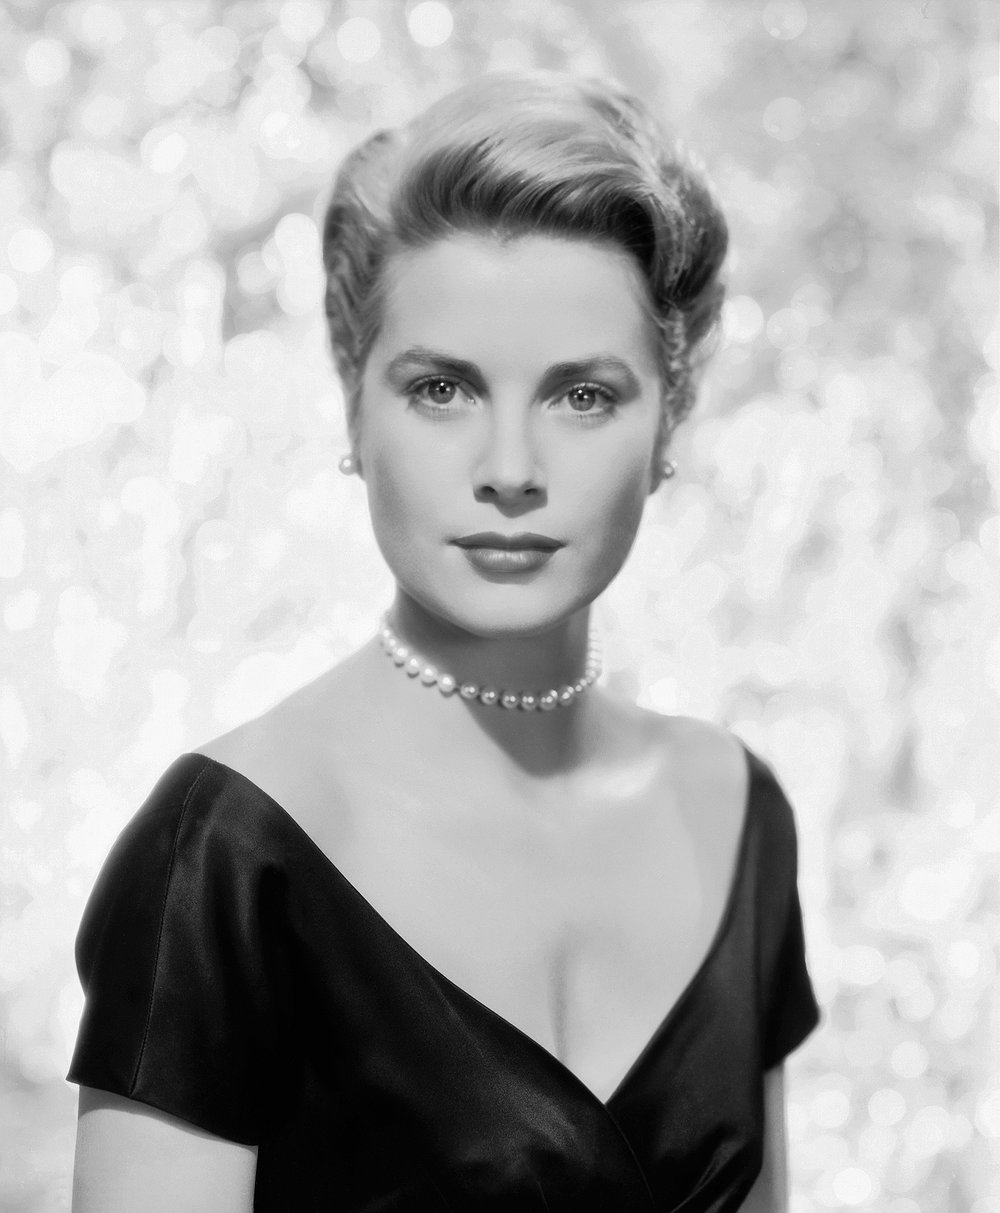 Photo has no copyright. This photo of Grace Kelly shows a typical women's hairstyle from the 1950's, in the later years of Rapps' Barber Shop.